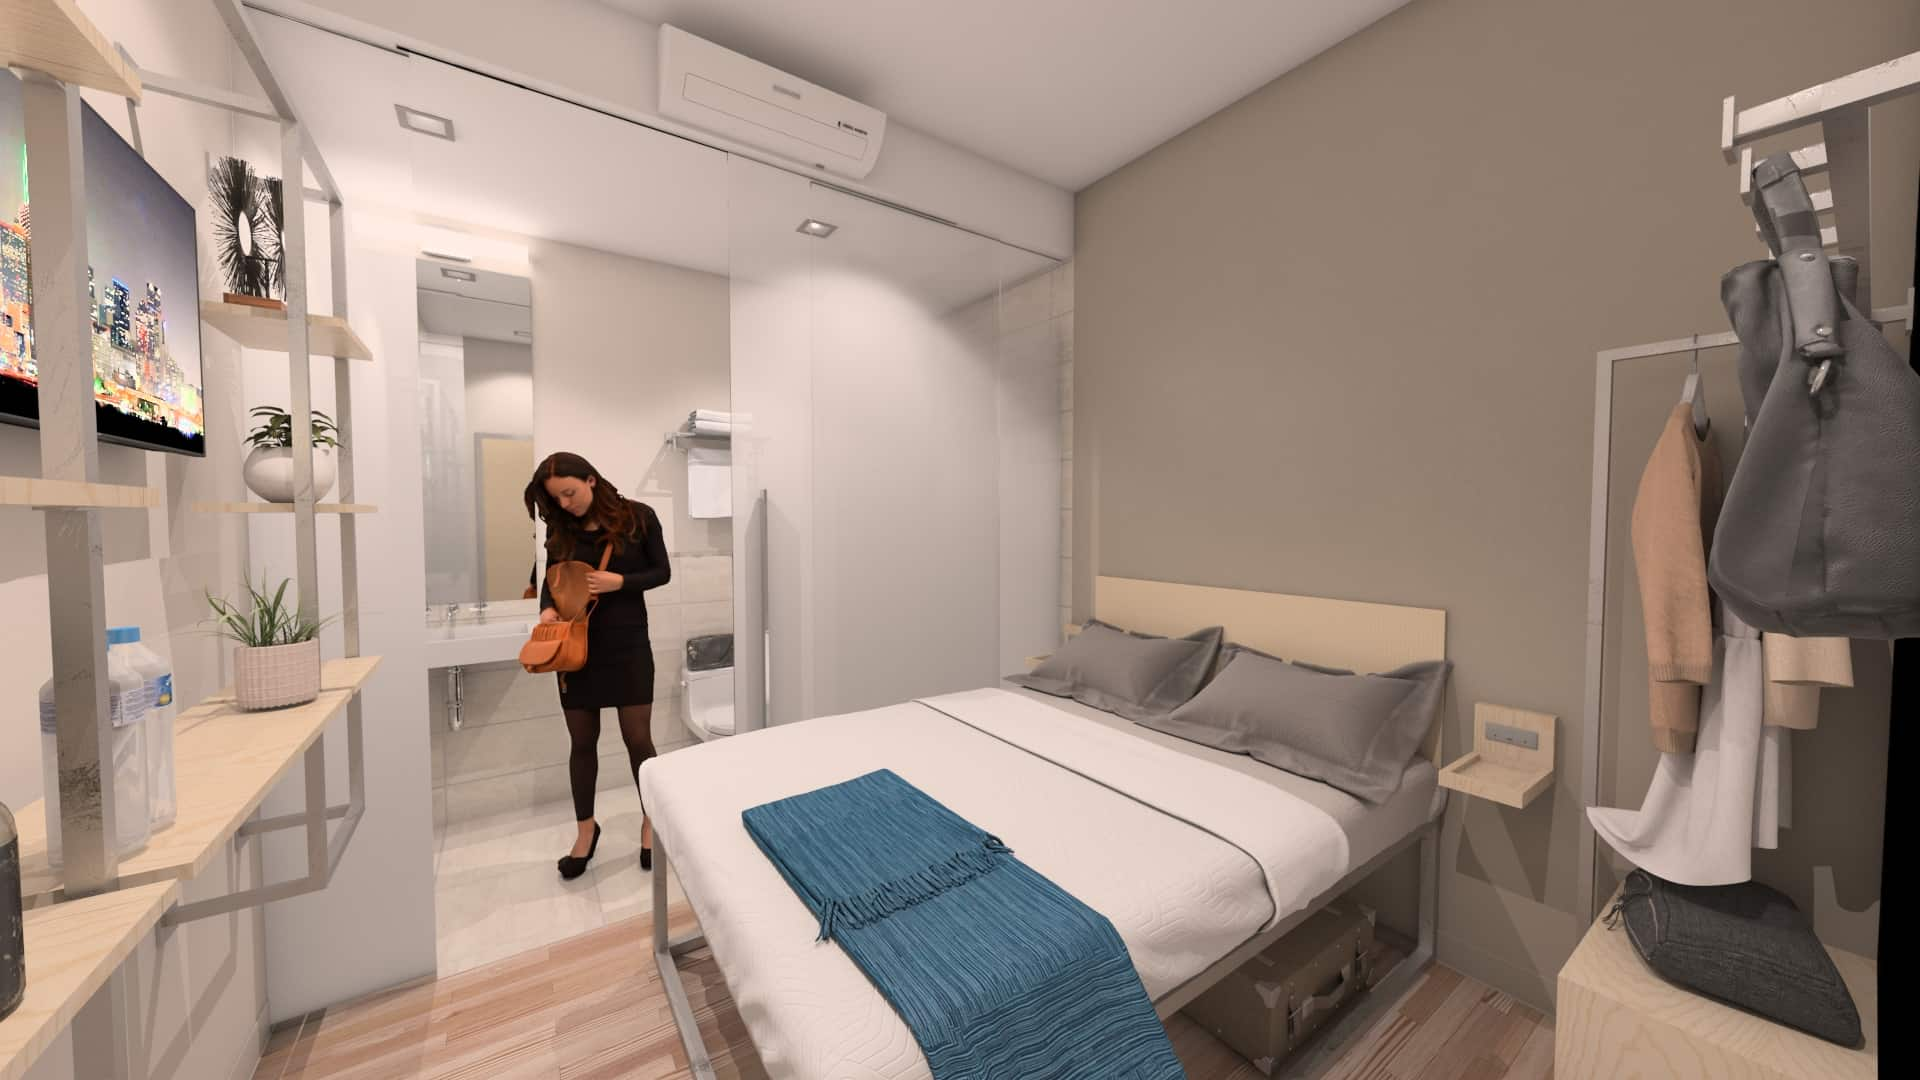 Photo showing interior of a bedroom, with bed and bathroom areas.